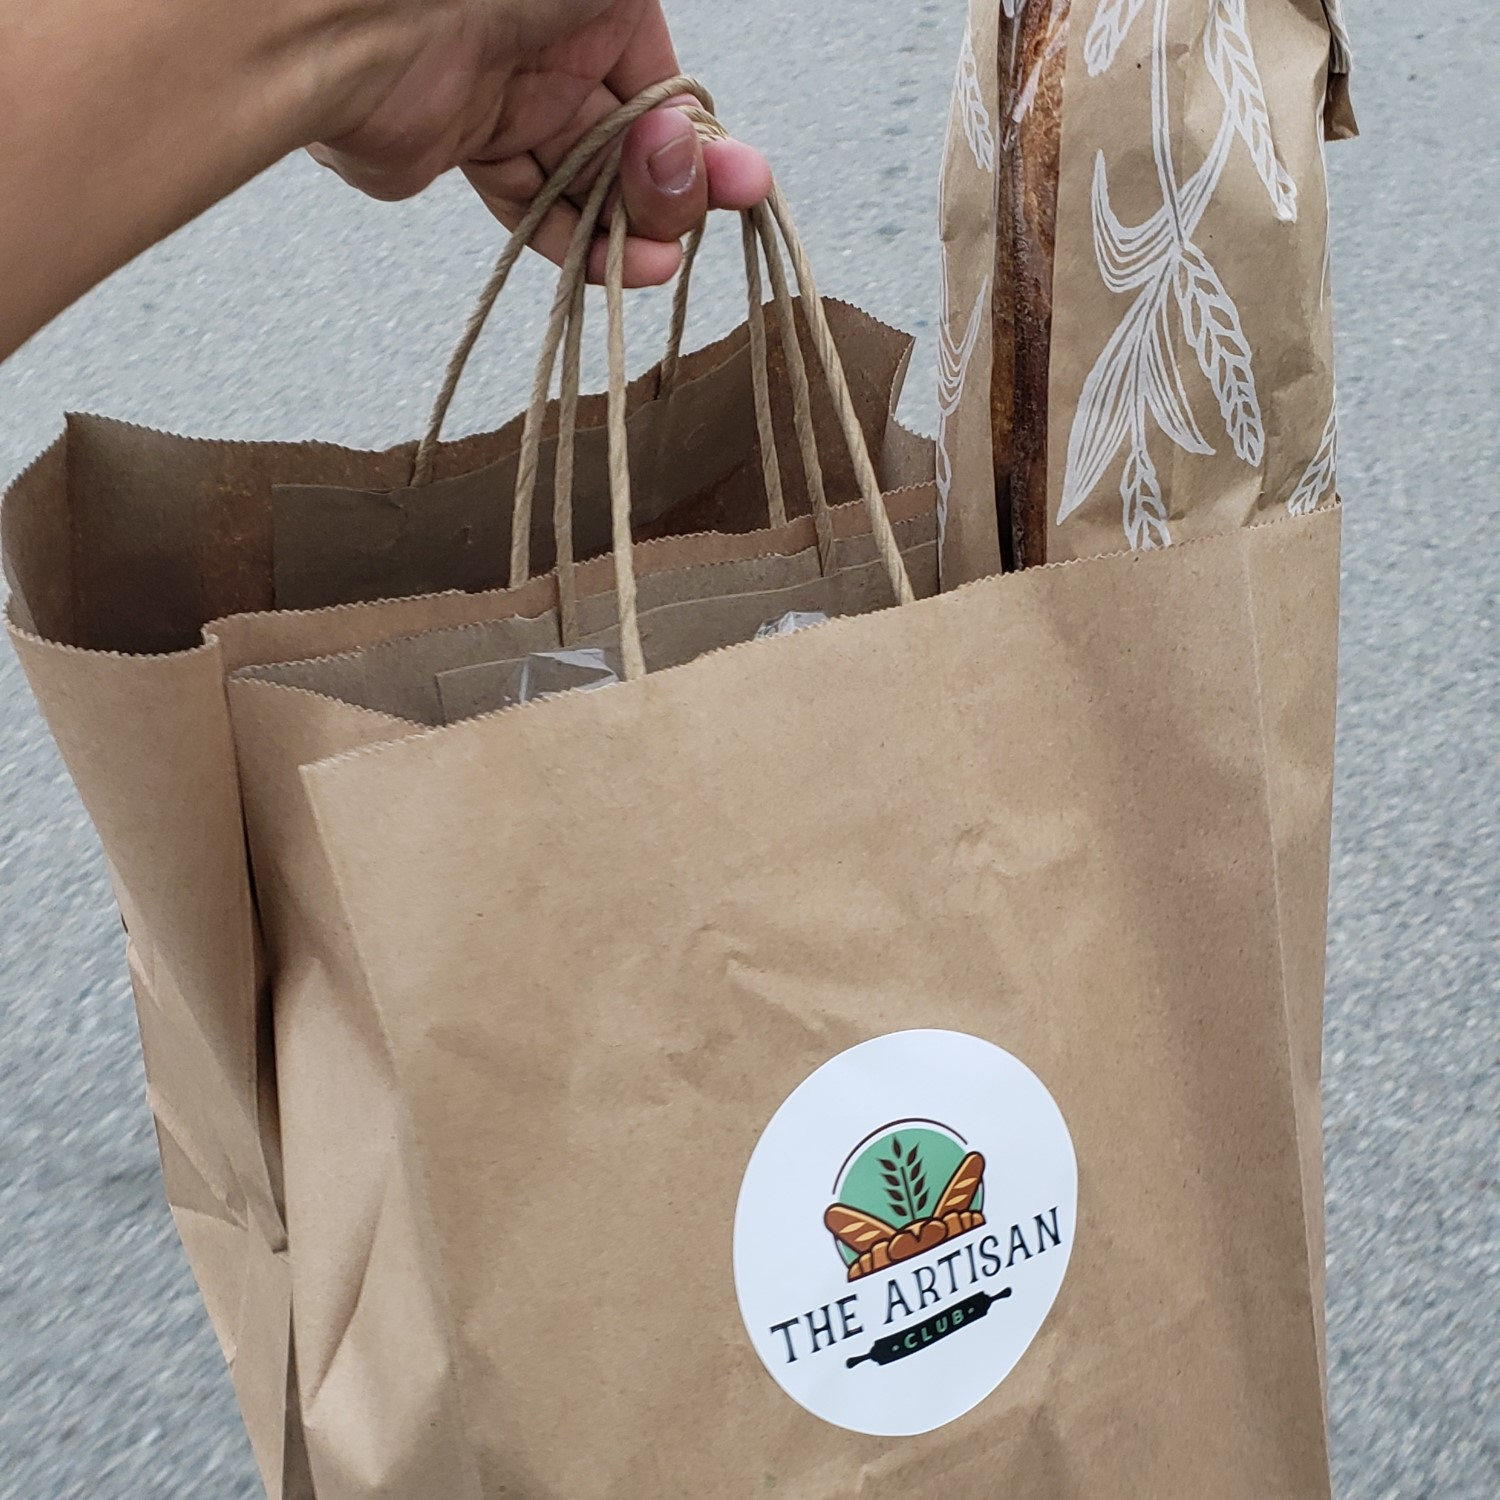 The Artisan Club bread delivery subscription